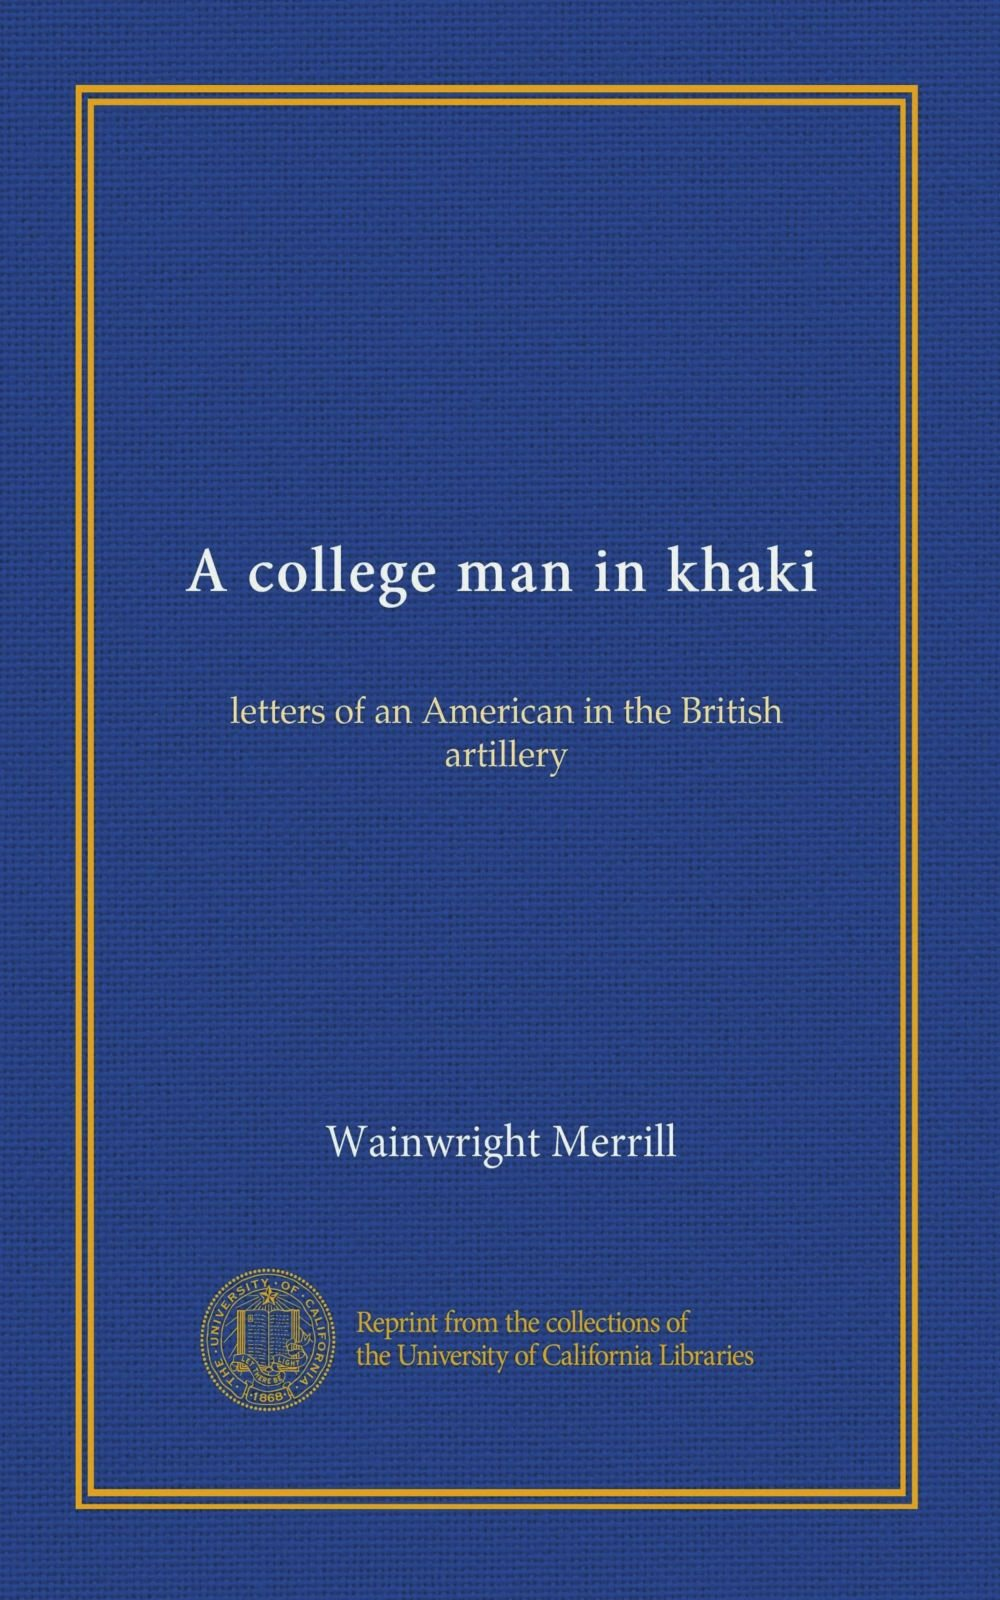 A college man in khaki: letters of an American in the British artillery pdf